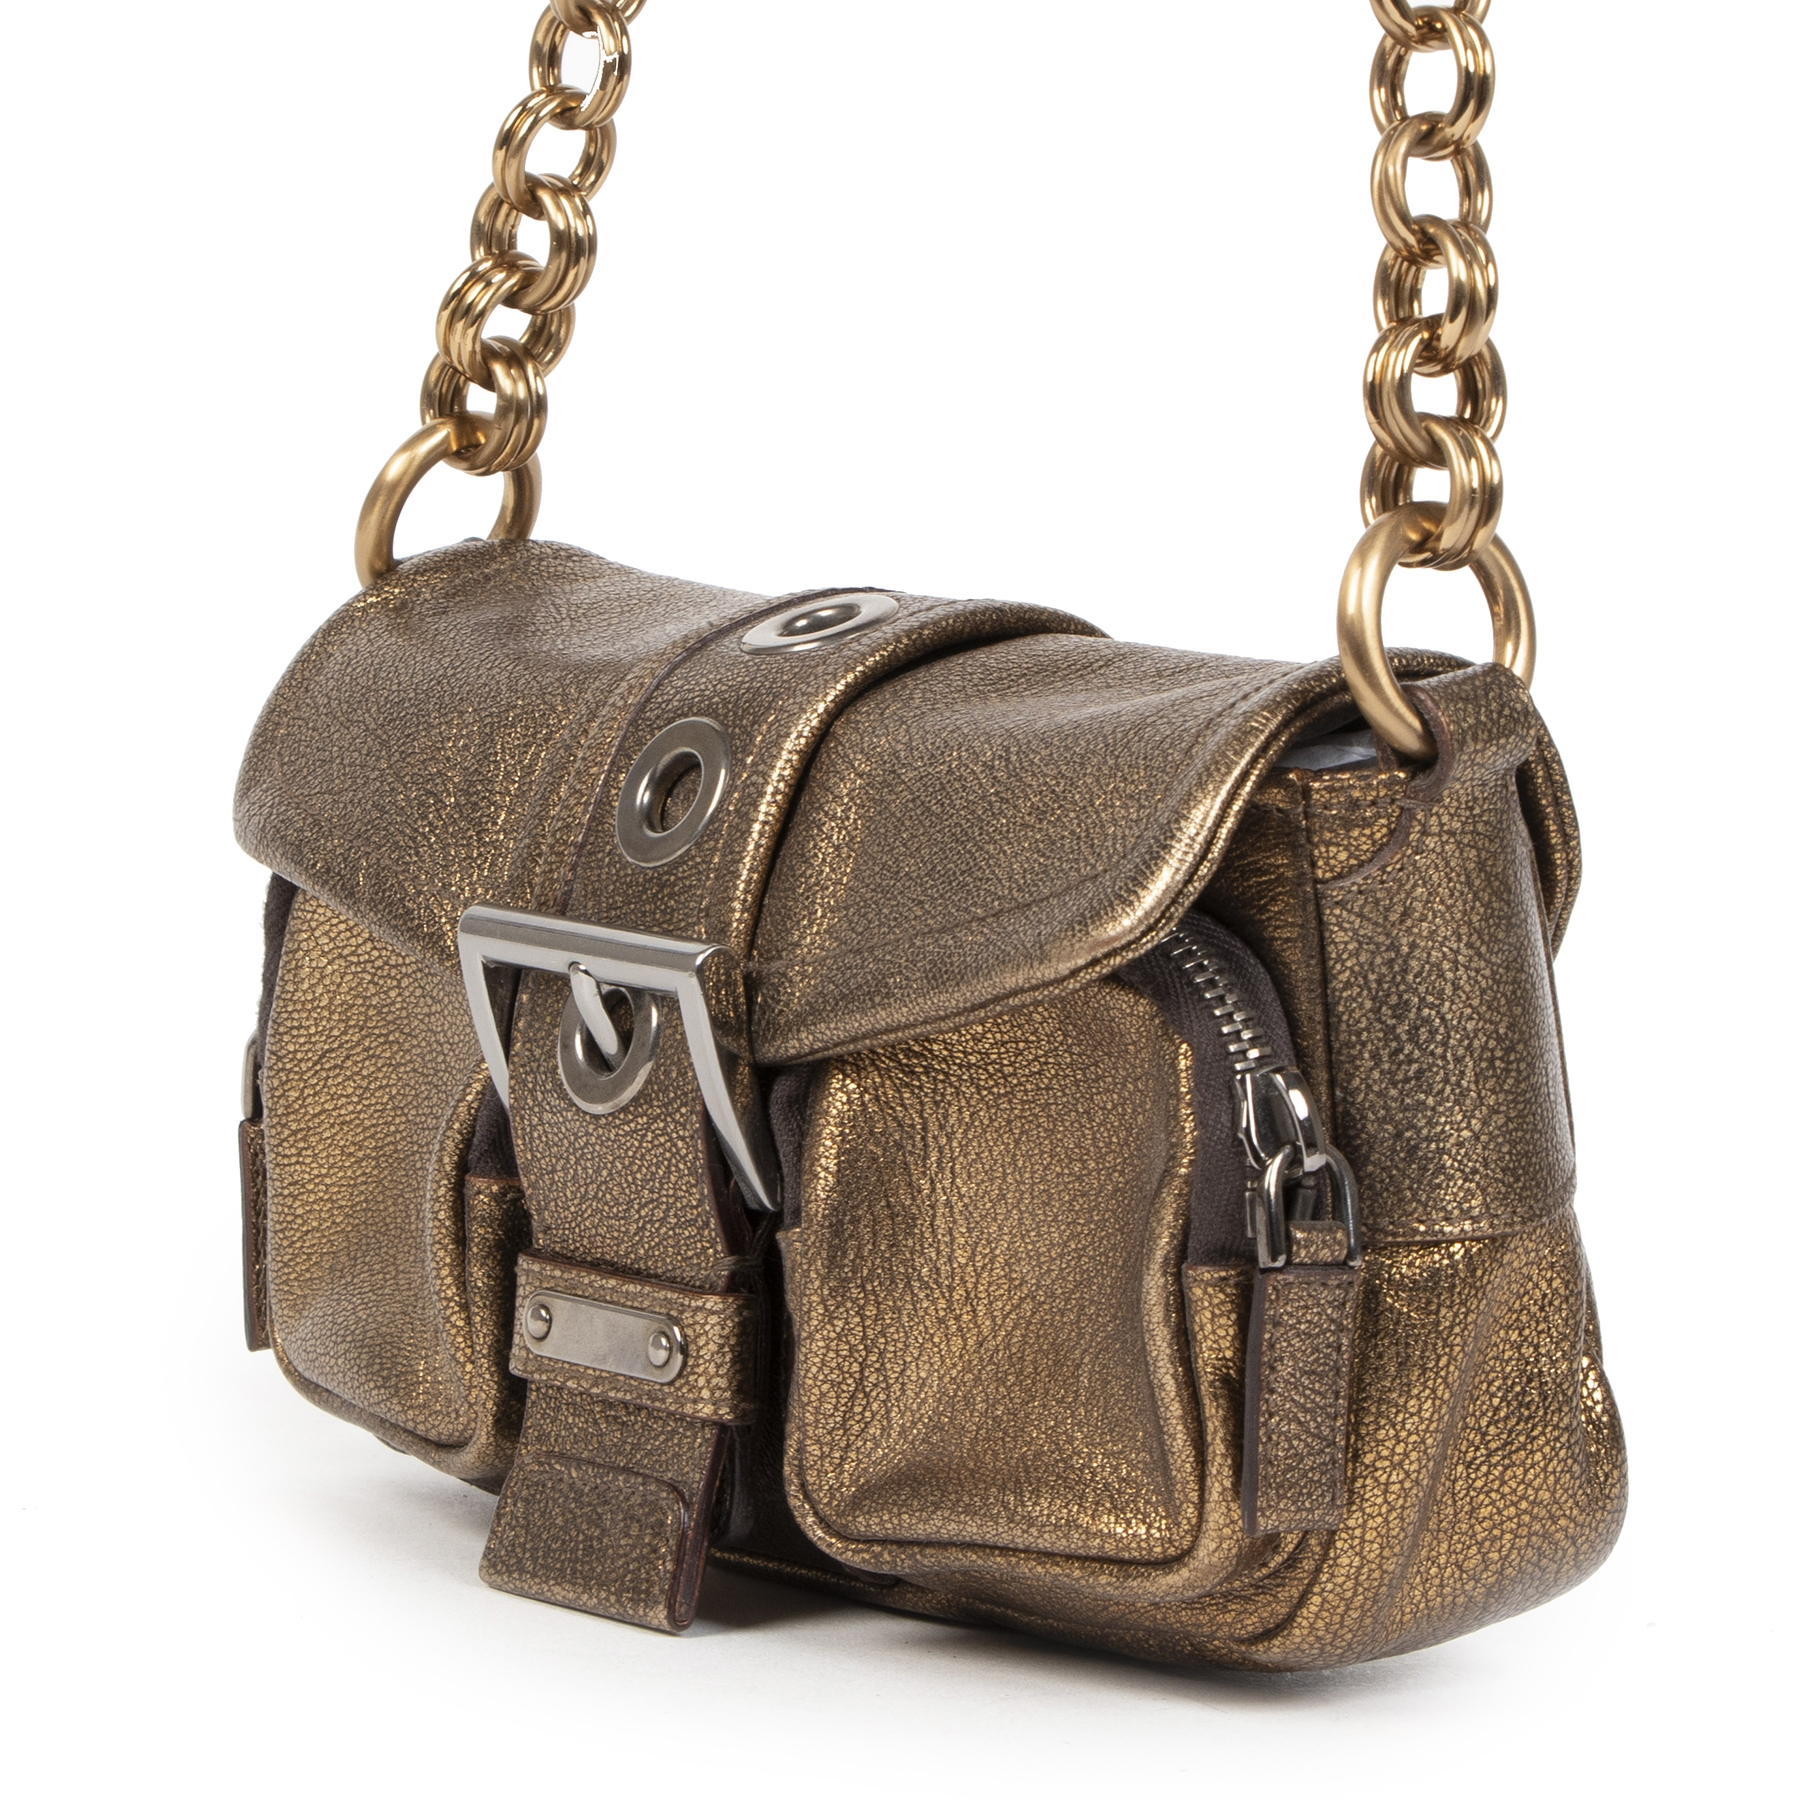 Authentieke tweedehands vintage Prada Bronze Sandalo Mini Pocket Bag koop online webshop LabelLOV